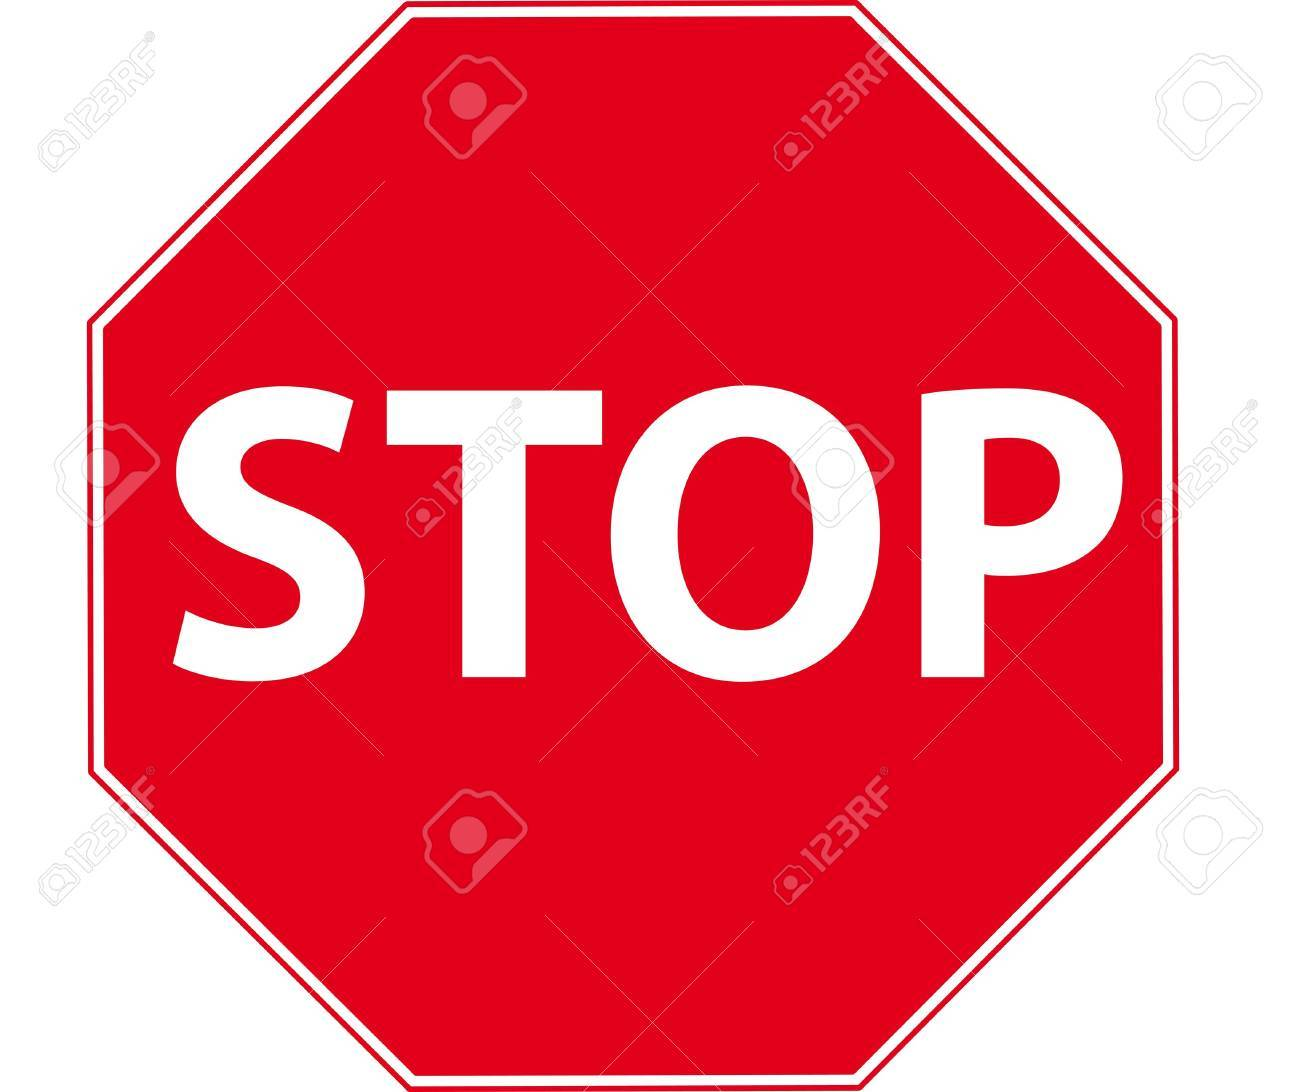 stop sign Stock Photo - 15081465